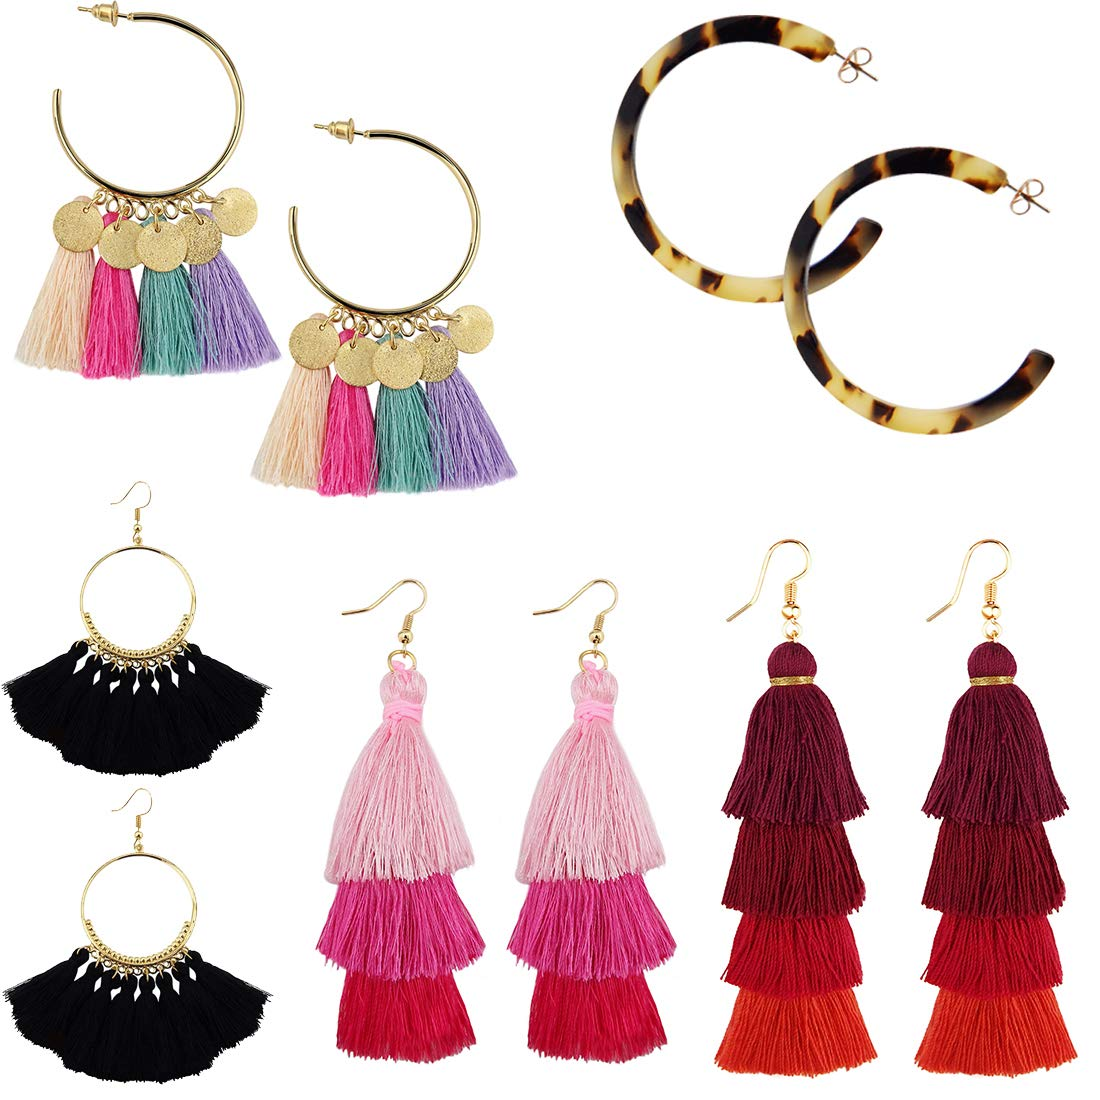 Burning Love 5 Pairs Tassel Earrings For Women Girls,Long&Layers&Hoop Drop Dangles Red Pink Black Tassel Earrings BLTE1